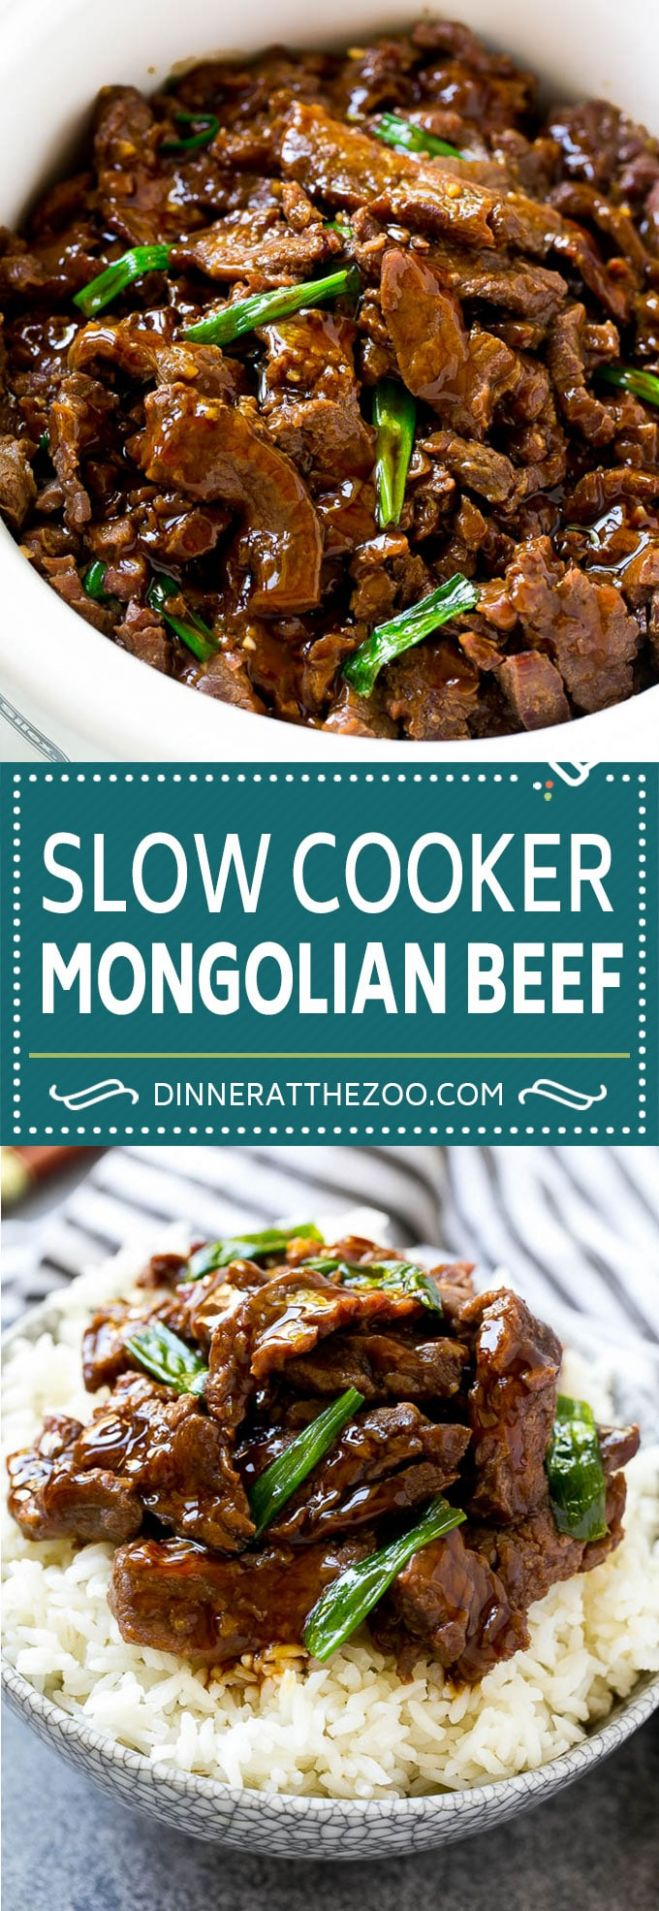 Slow Cooker Mongolian Beef - Dinner at the Zoo - Recipes Beef In Crock Pot